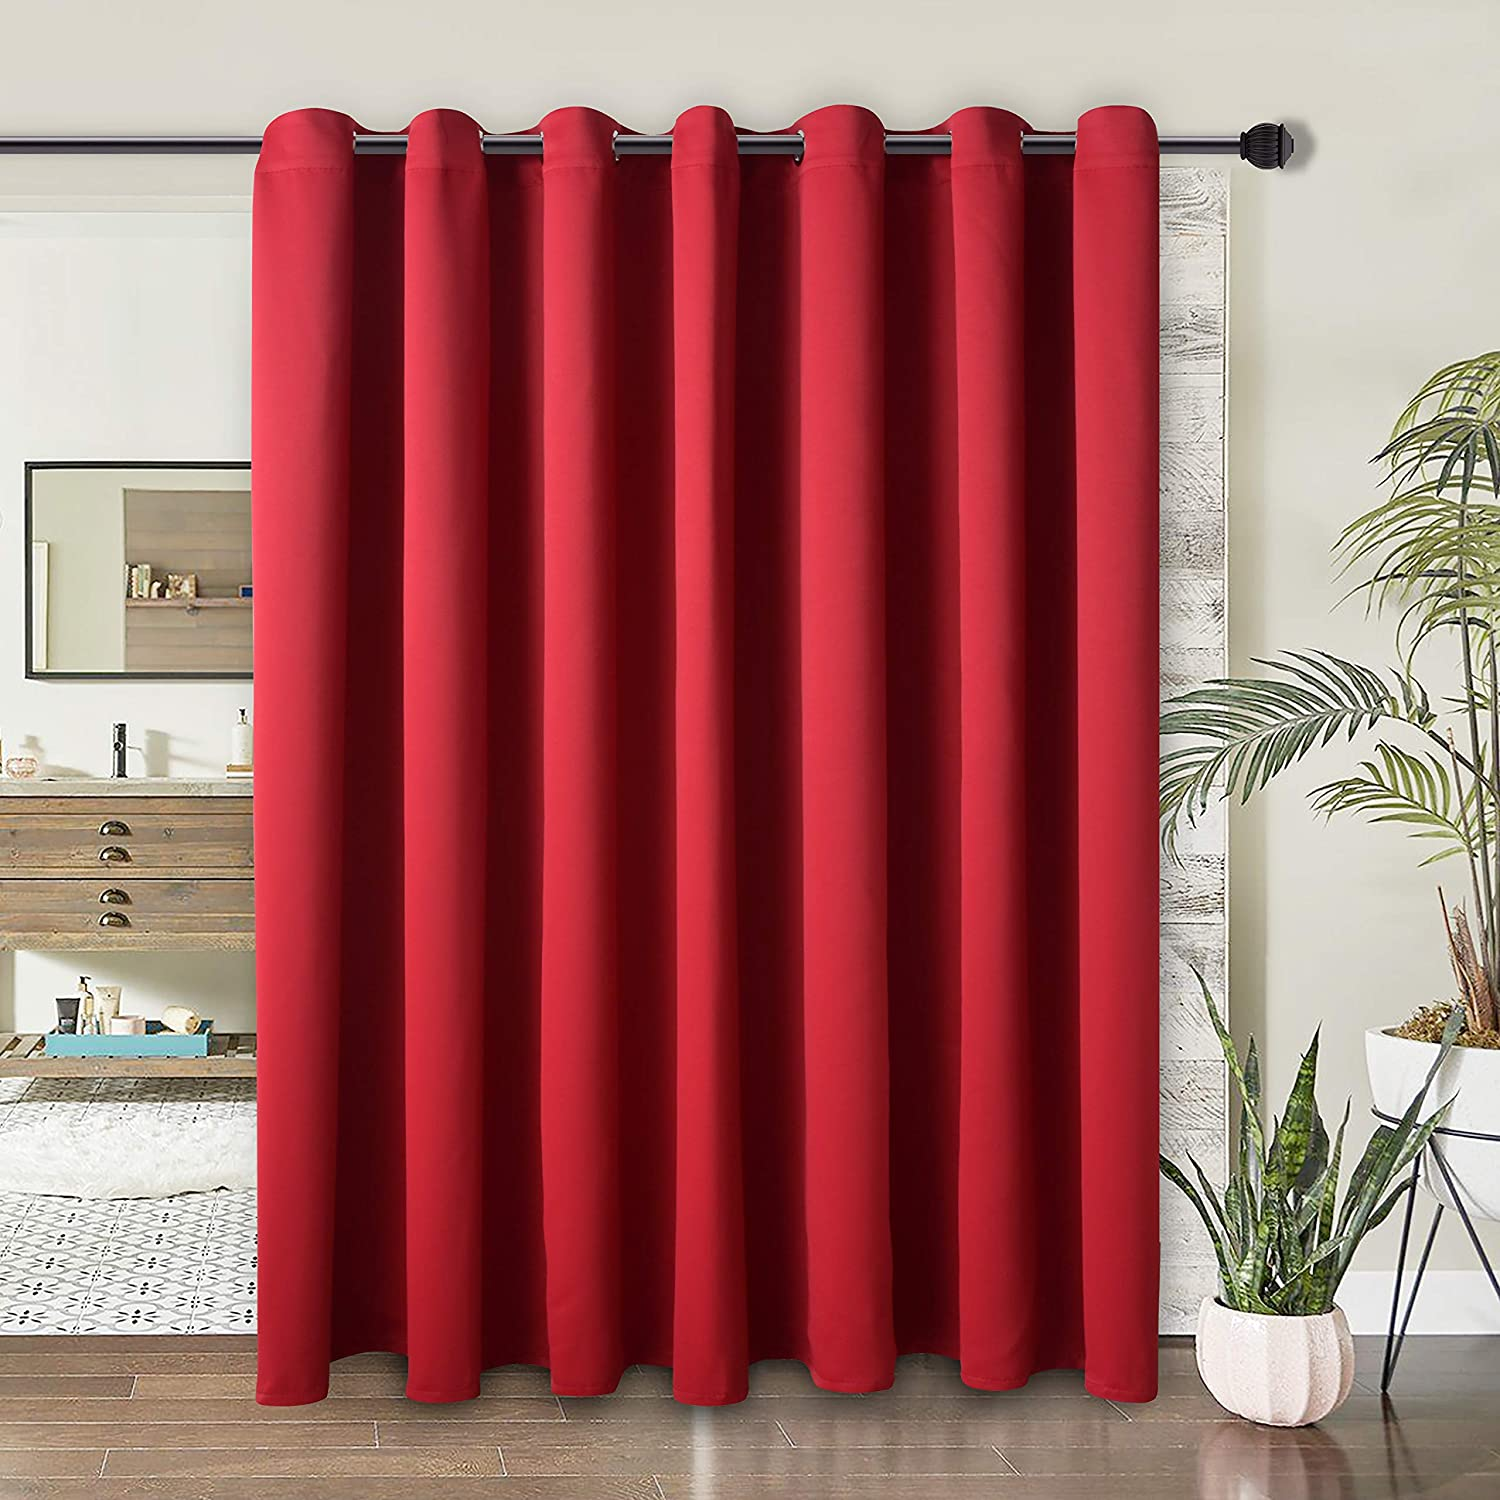 Review of WONTEX Room Divider Curtain - Privacy Blackout Curtains